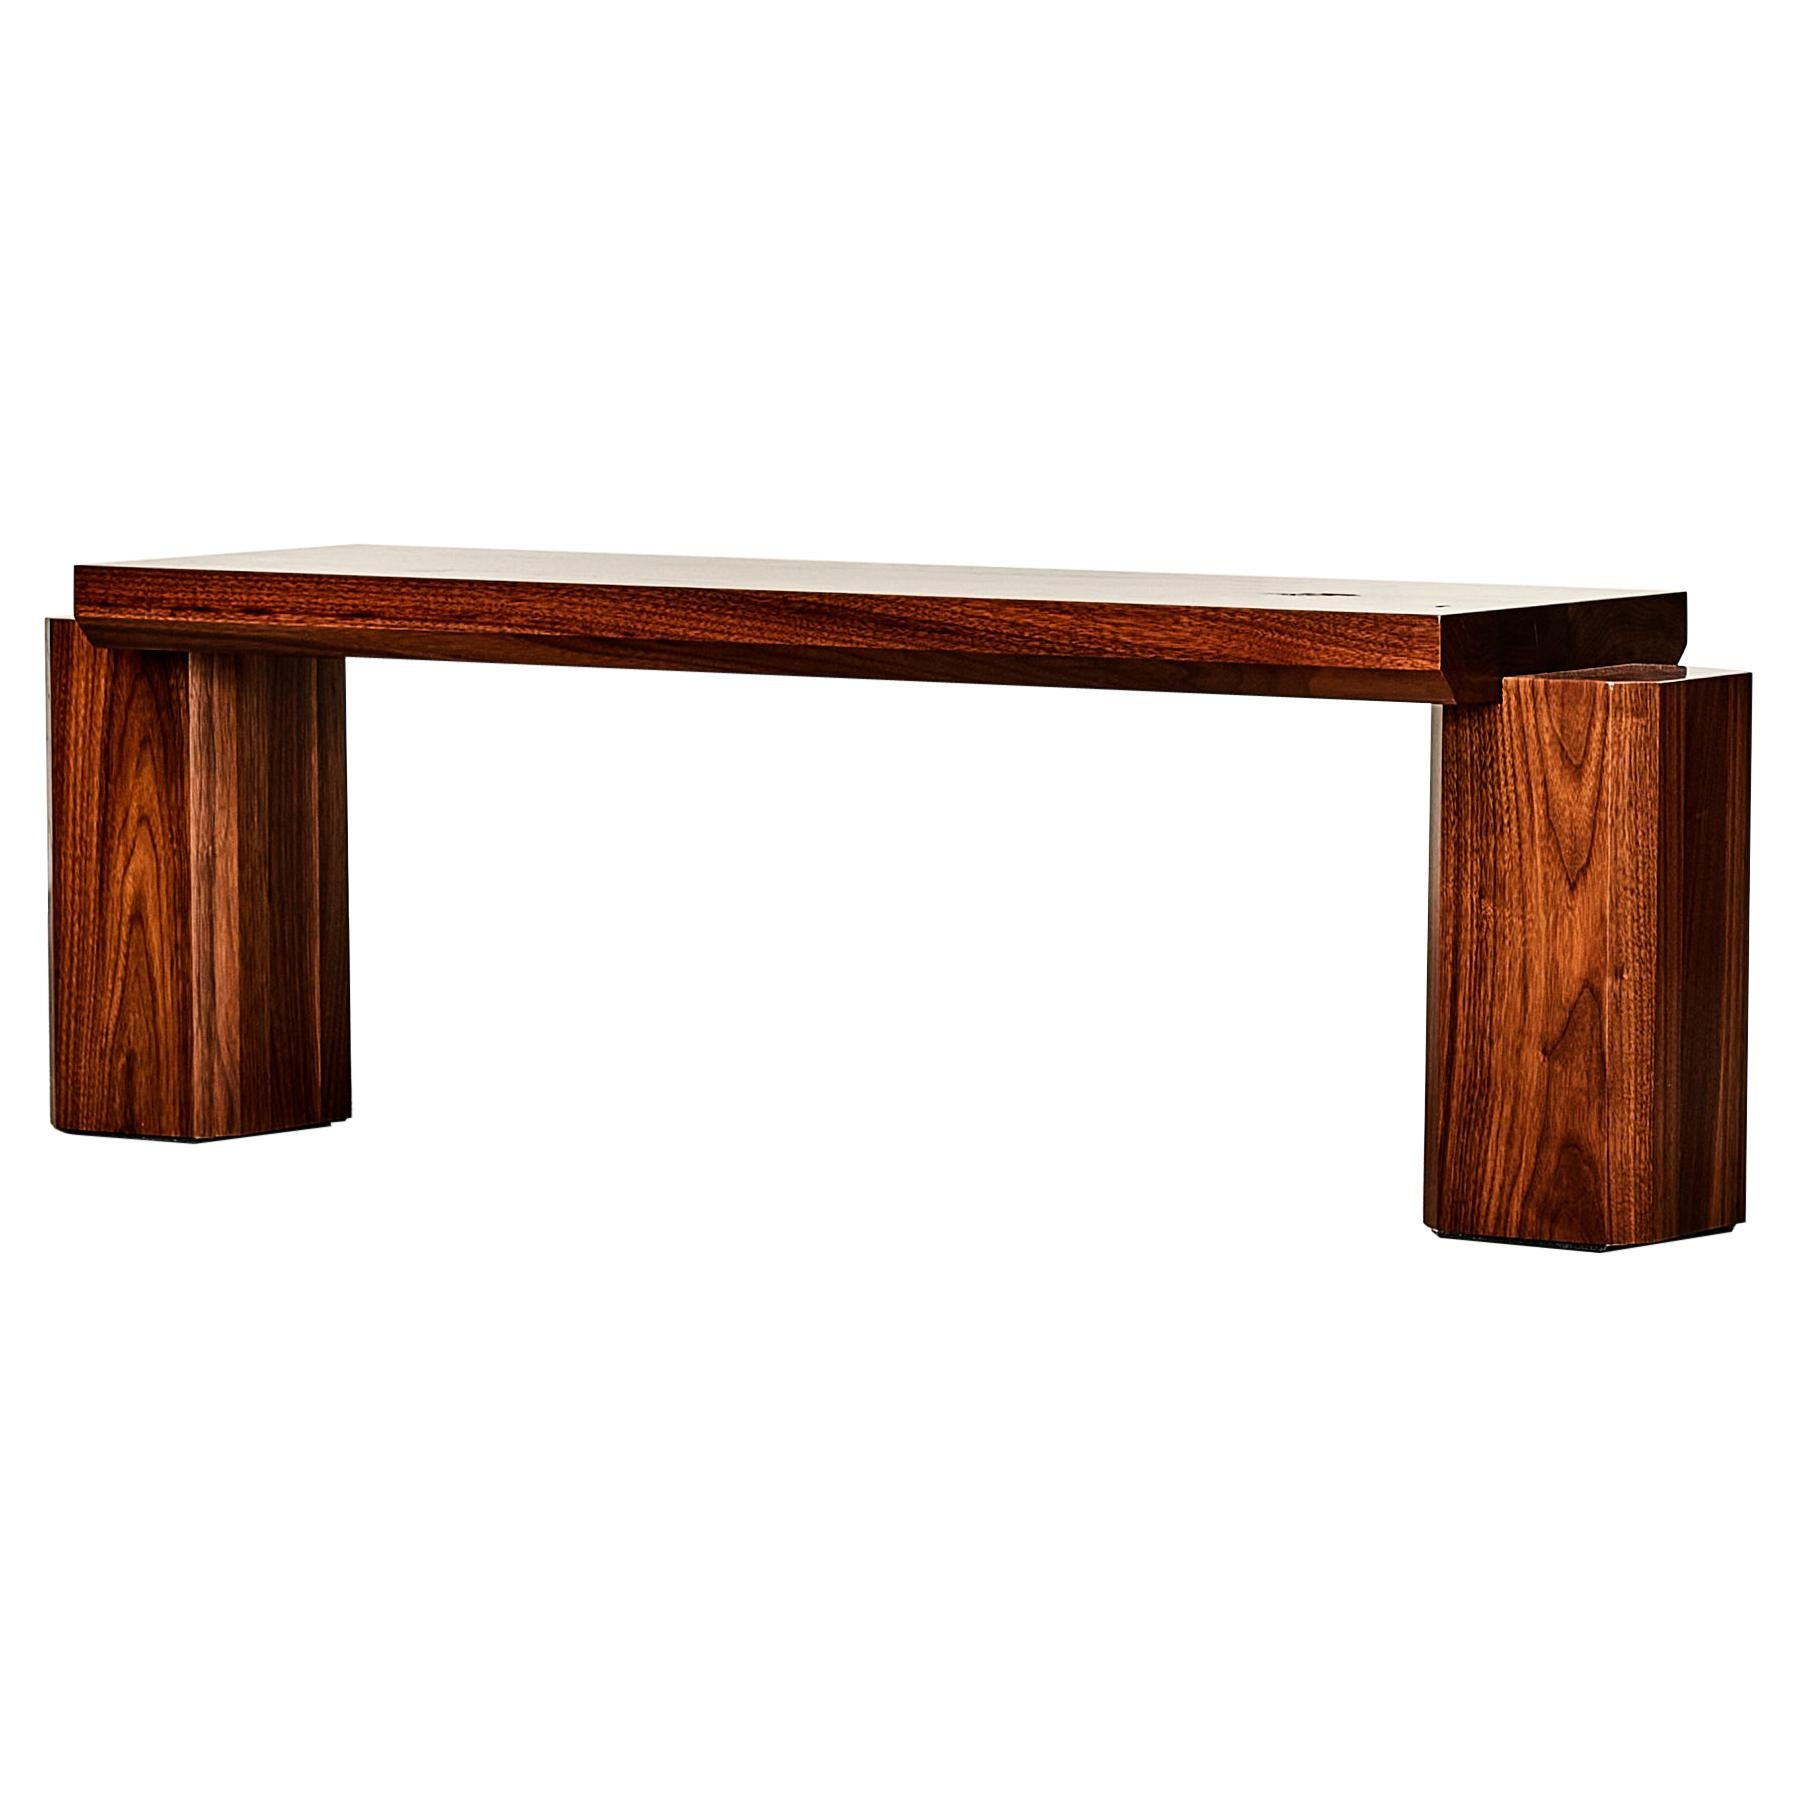 Unique GB402 Walnut Bench Sculpted by Gregory Beson